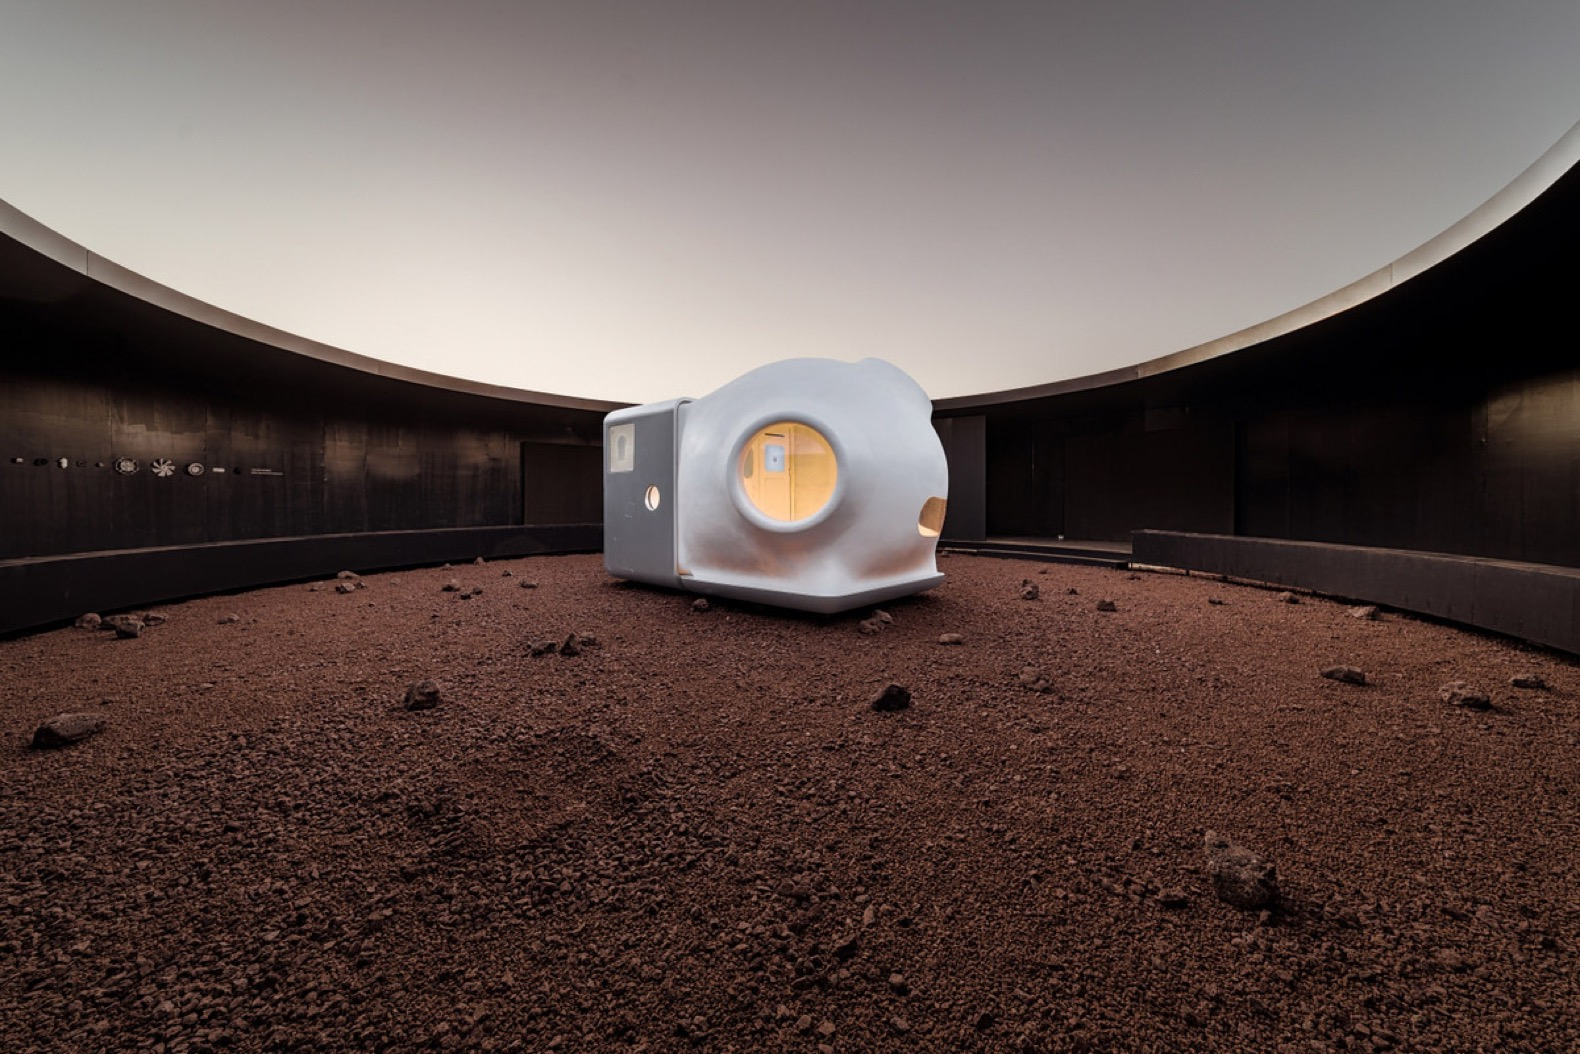 Martian tiny home prototype champions zero waste and self sufficiency